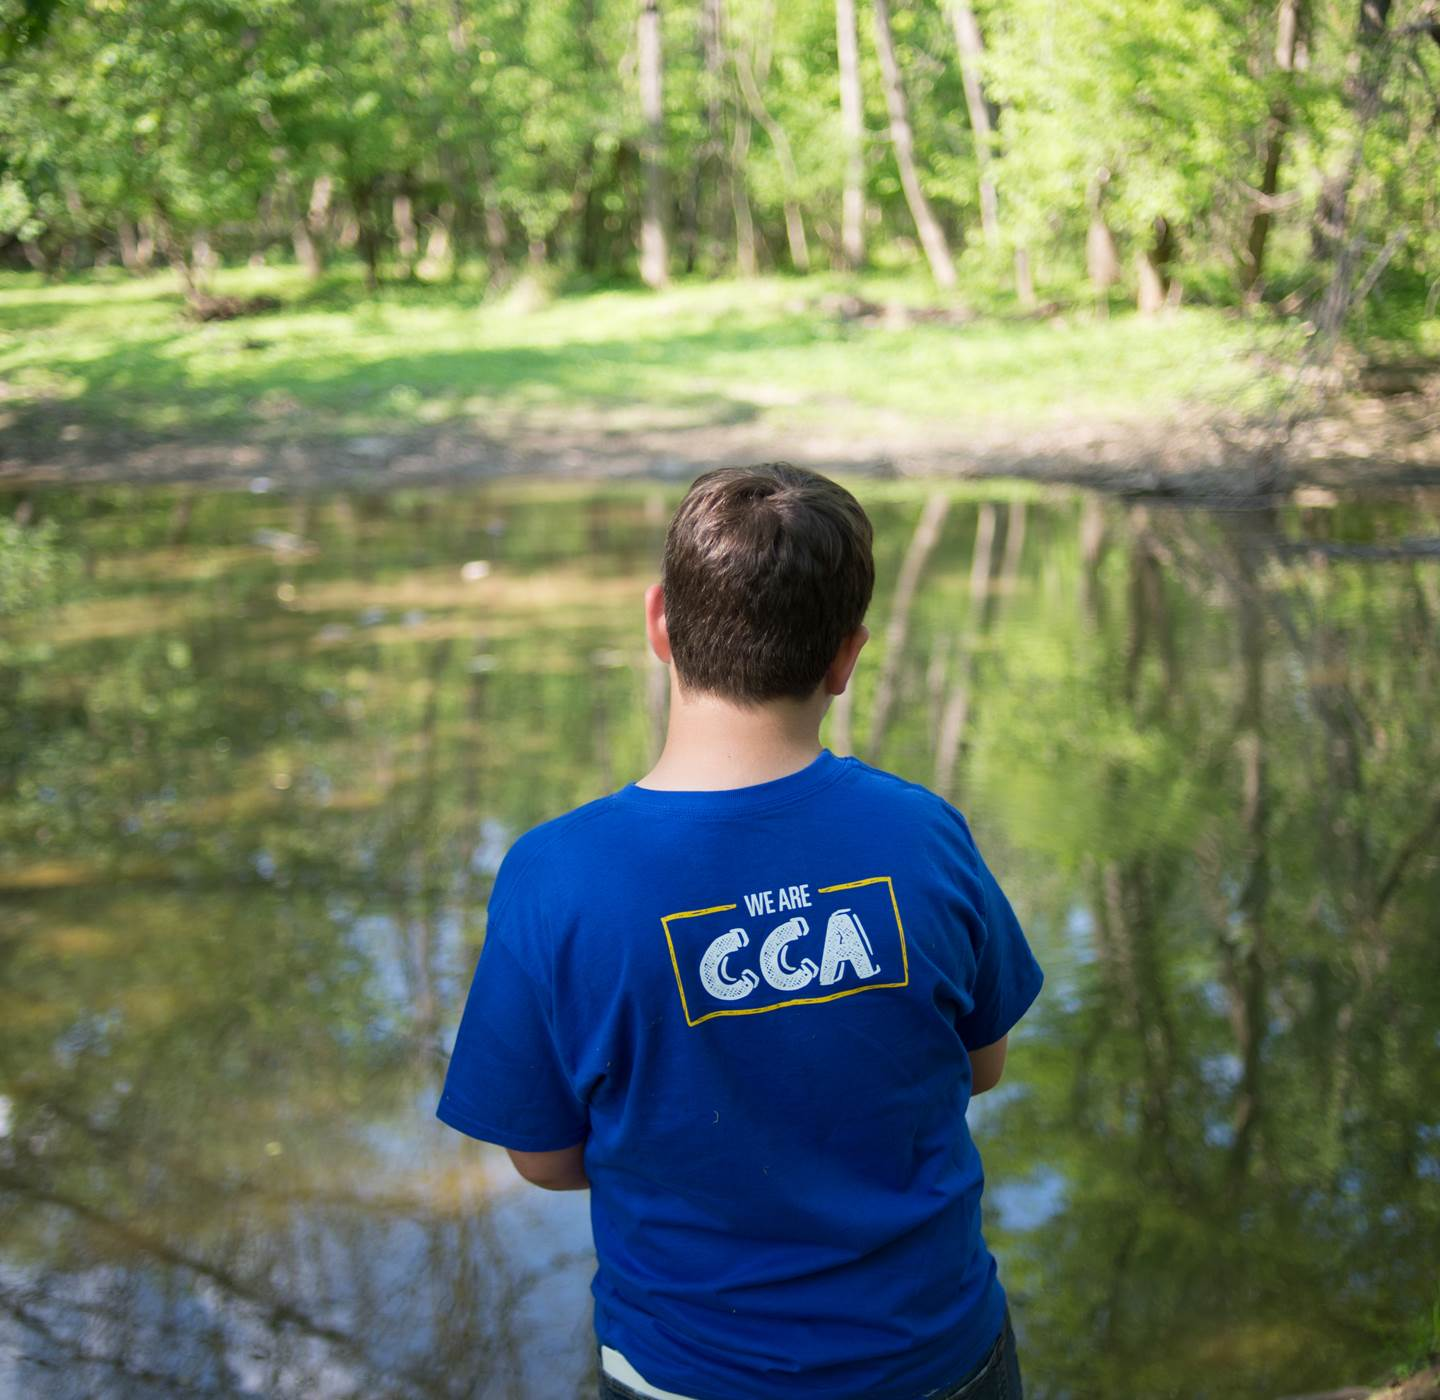 A student wearing a CCA t-shirt in front of a pond.